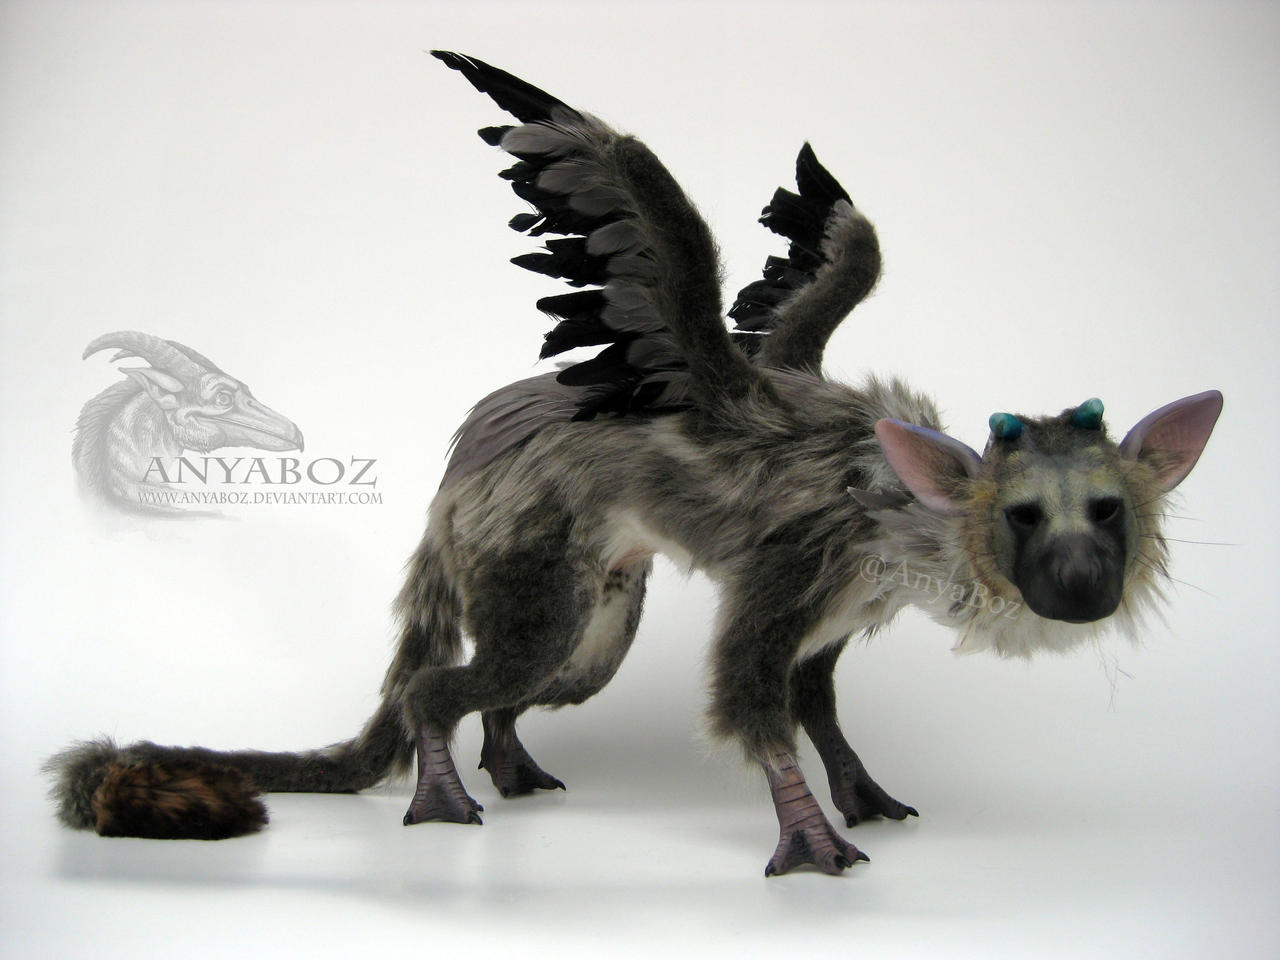 trico the last room - photo #3